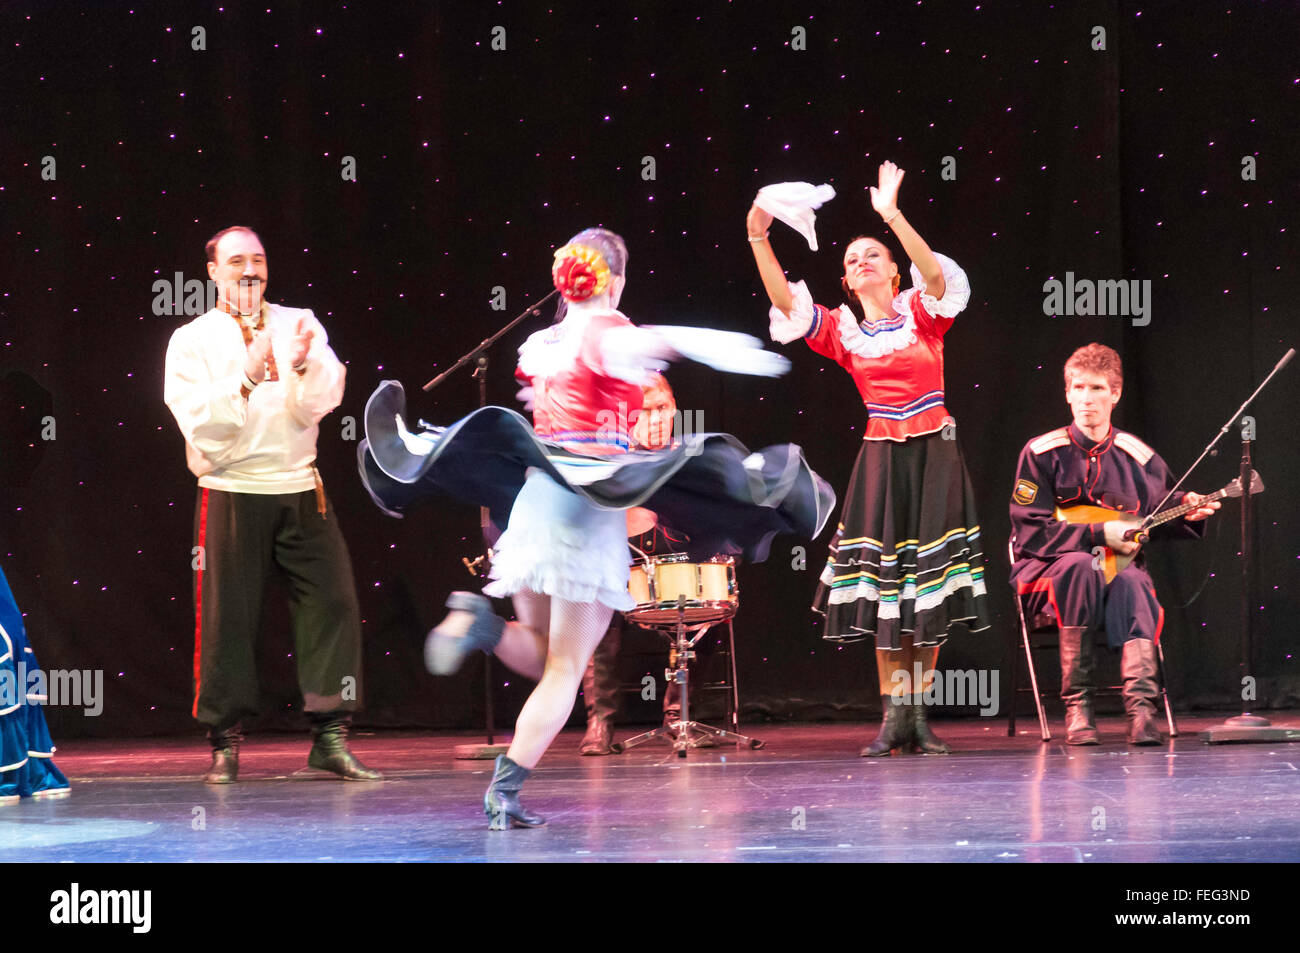 Russian folk dancers performing in The Pacifica Theatre, Royal Caribbean's Brilliance of the Seas cruise ship, - Stock Image